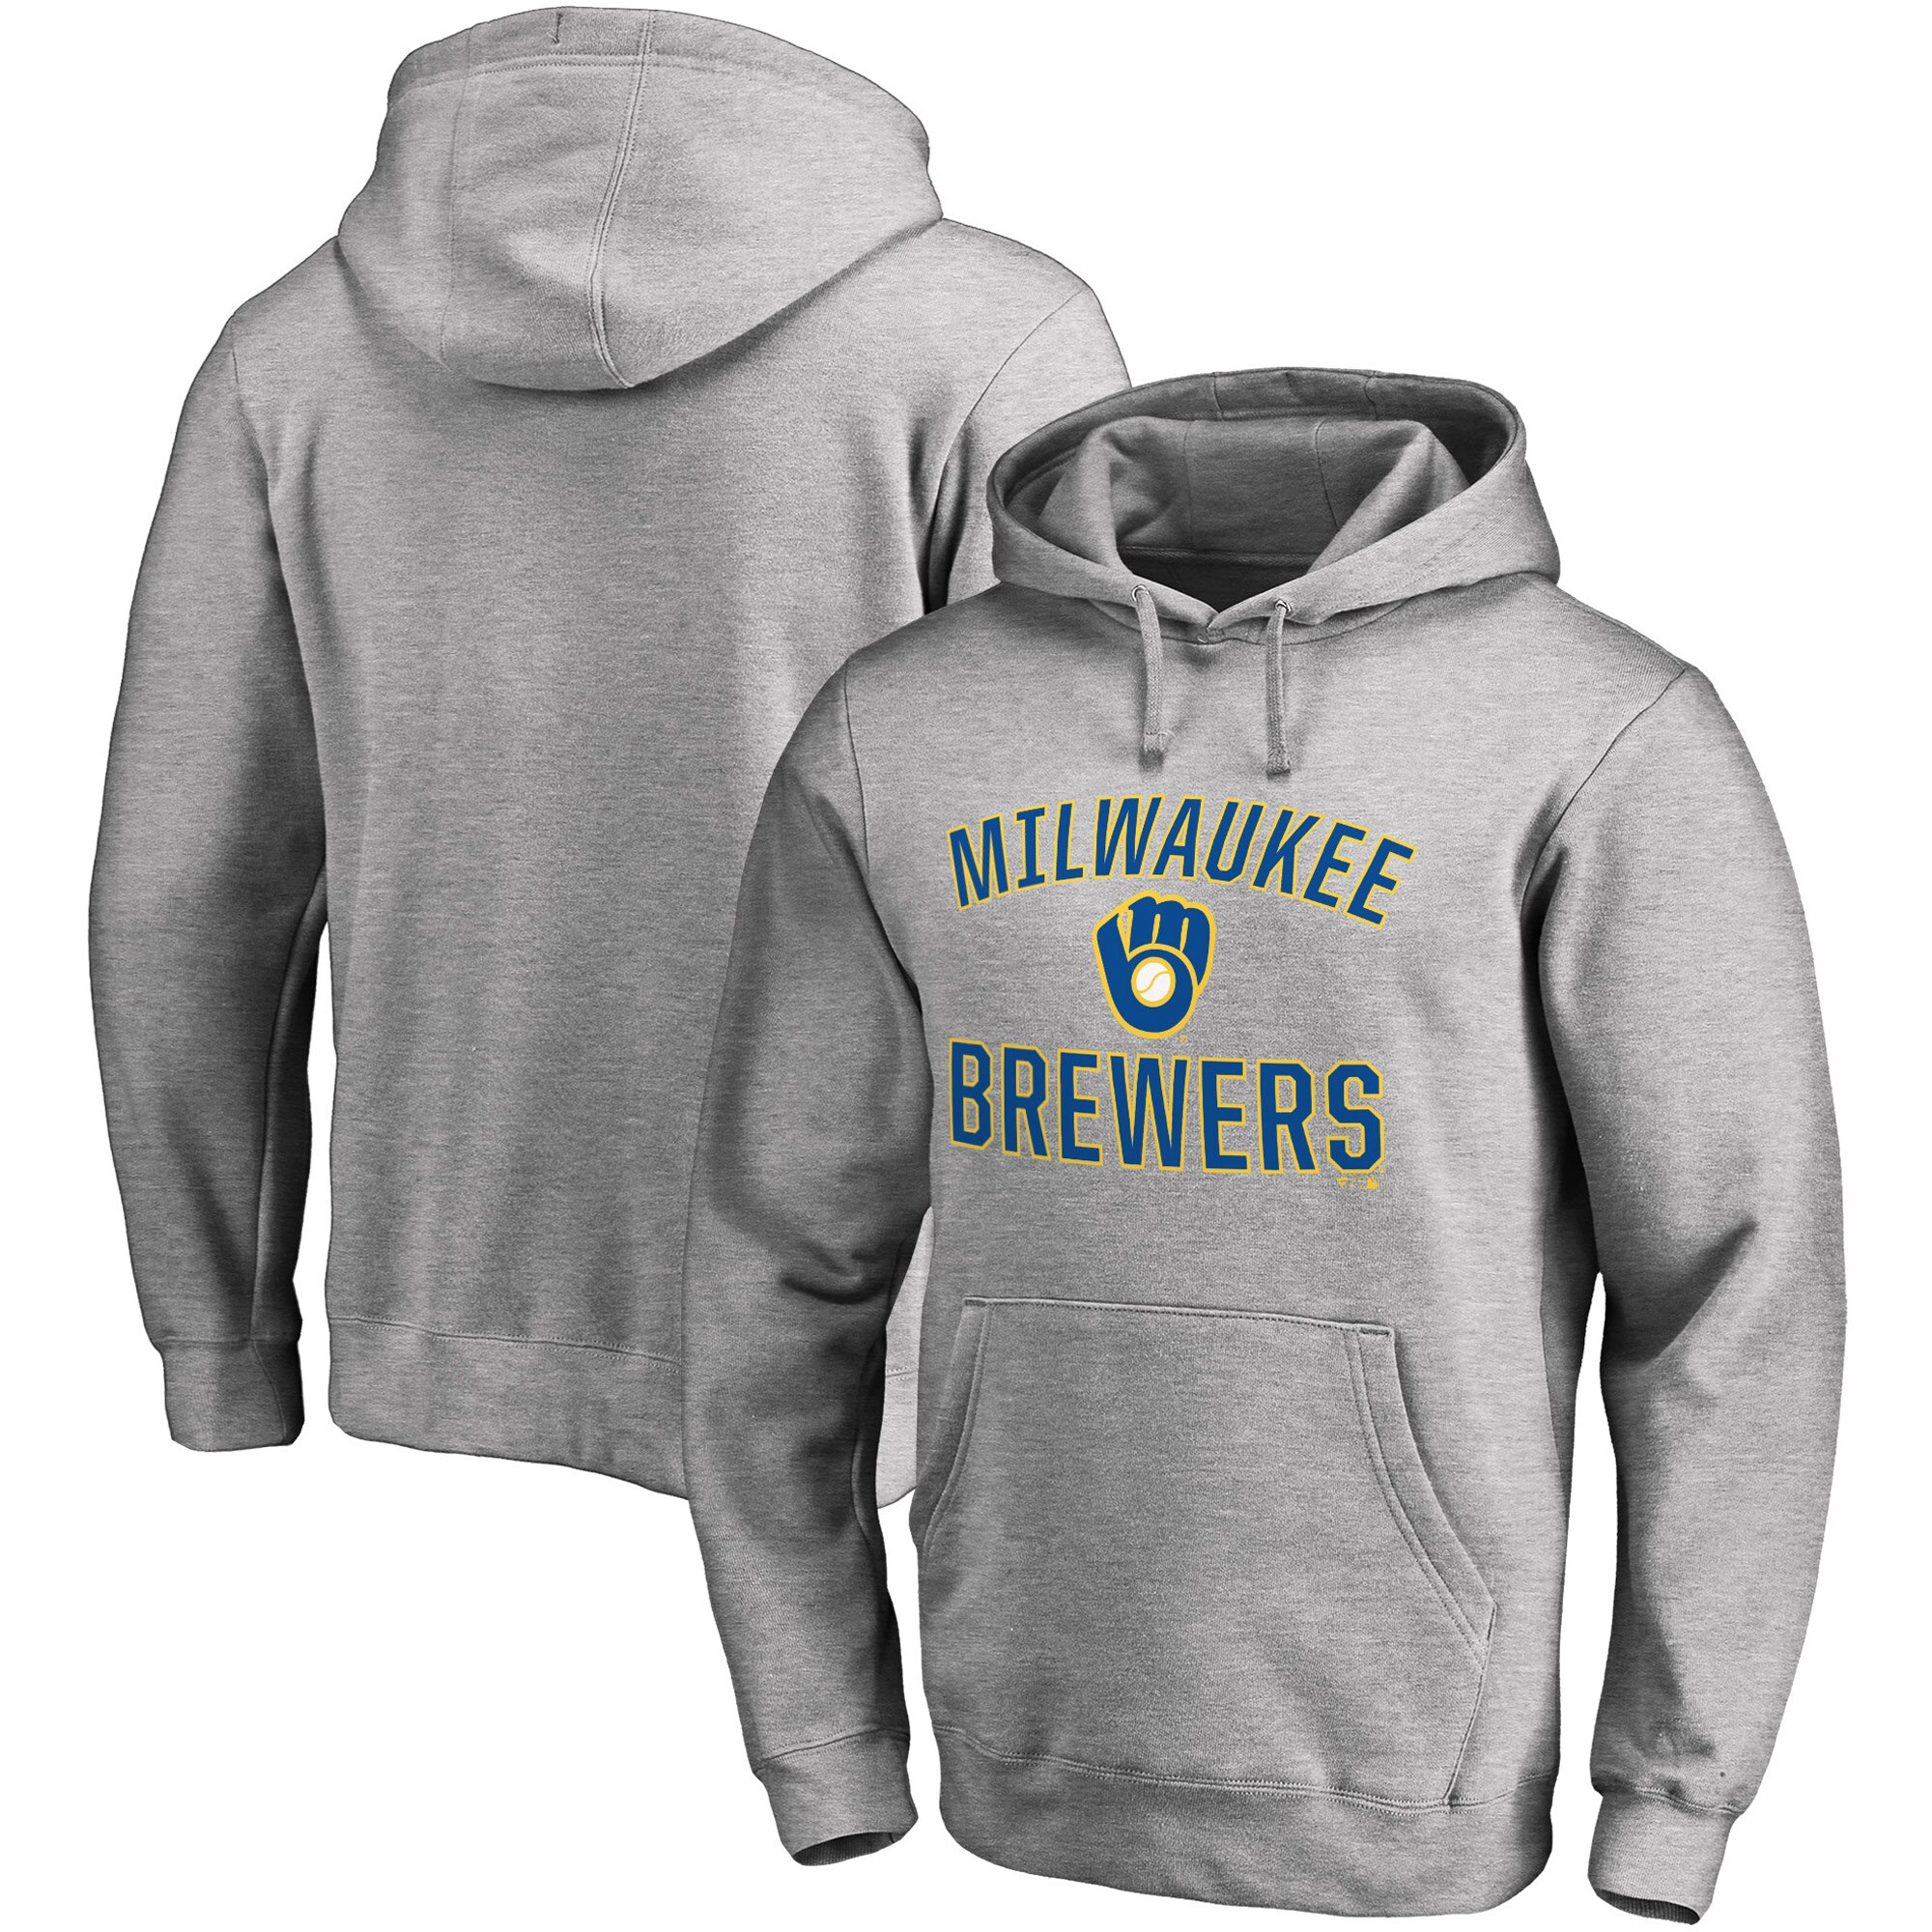 Milwaukee Brewers Fanatics Branded Victory Arch Pullover Hoodie - Heathered Gray